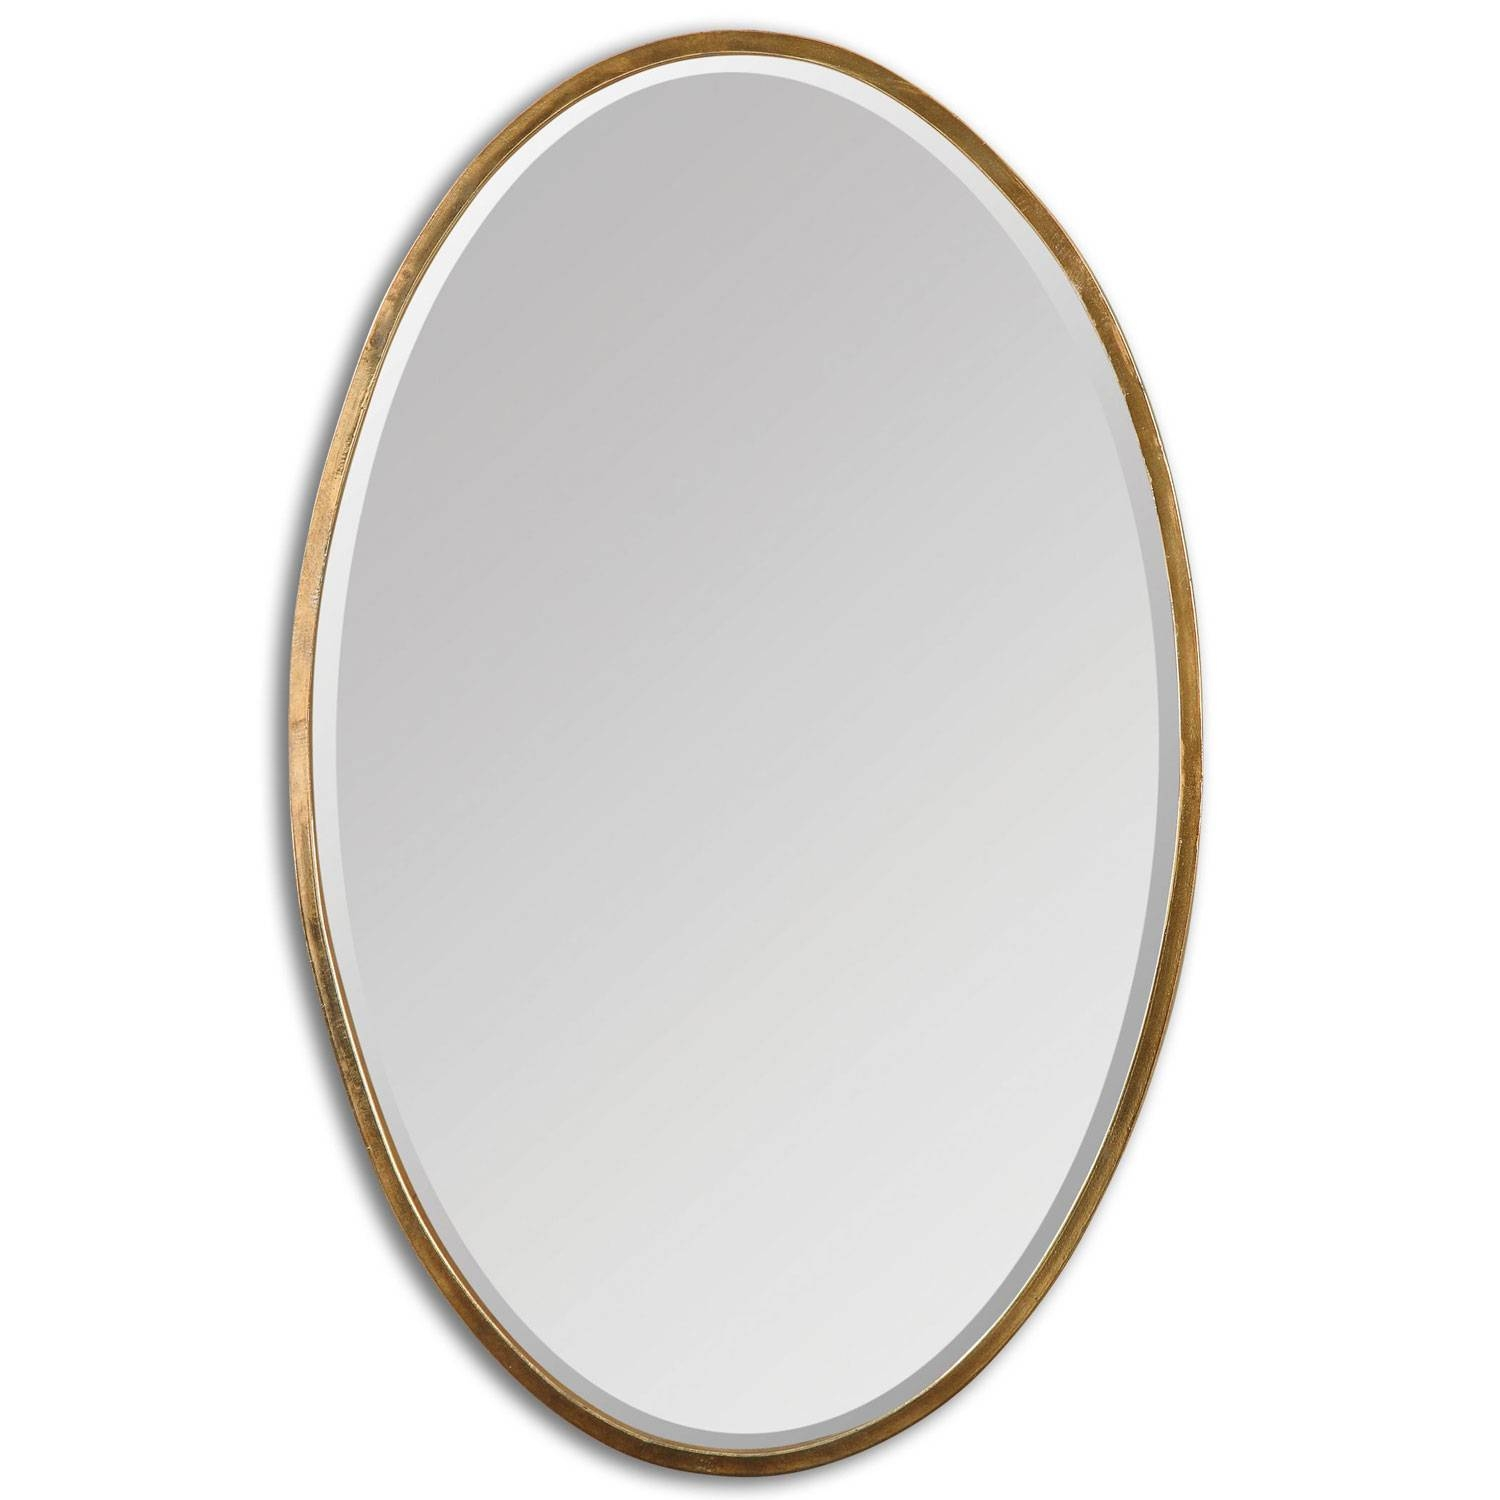 Herleva Oval Antique Gold Oval Mirror Uttermost Wall Mirror throughout Silver Oval Wall Mirrors (Image 11 of 25)